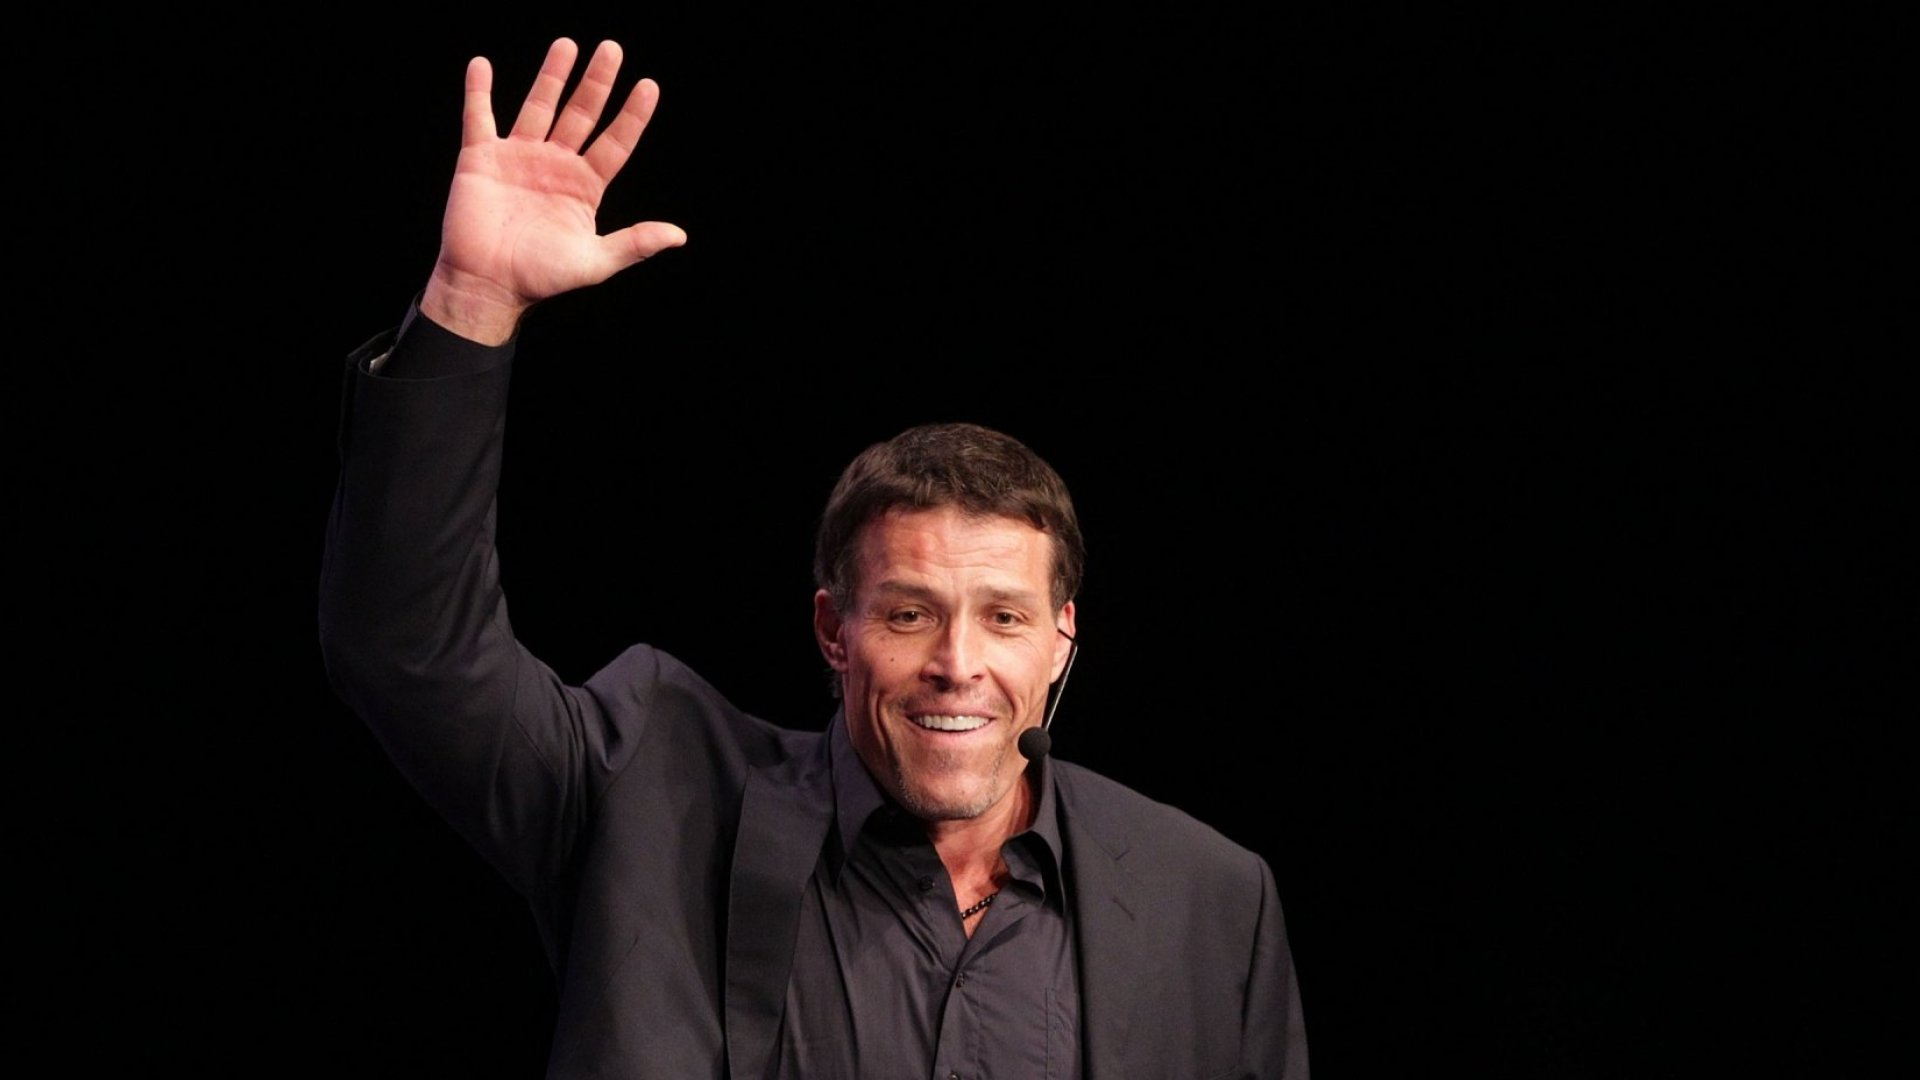 The Mental Exercise That Tony Robbins Uses to Overcome Fear